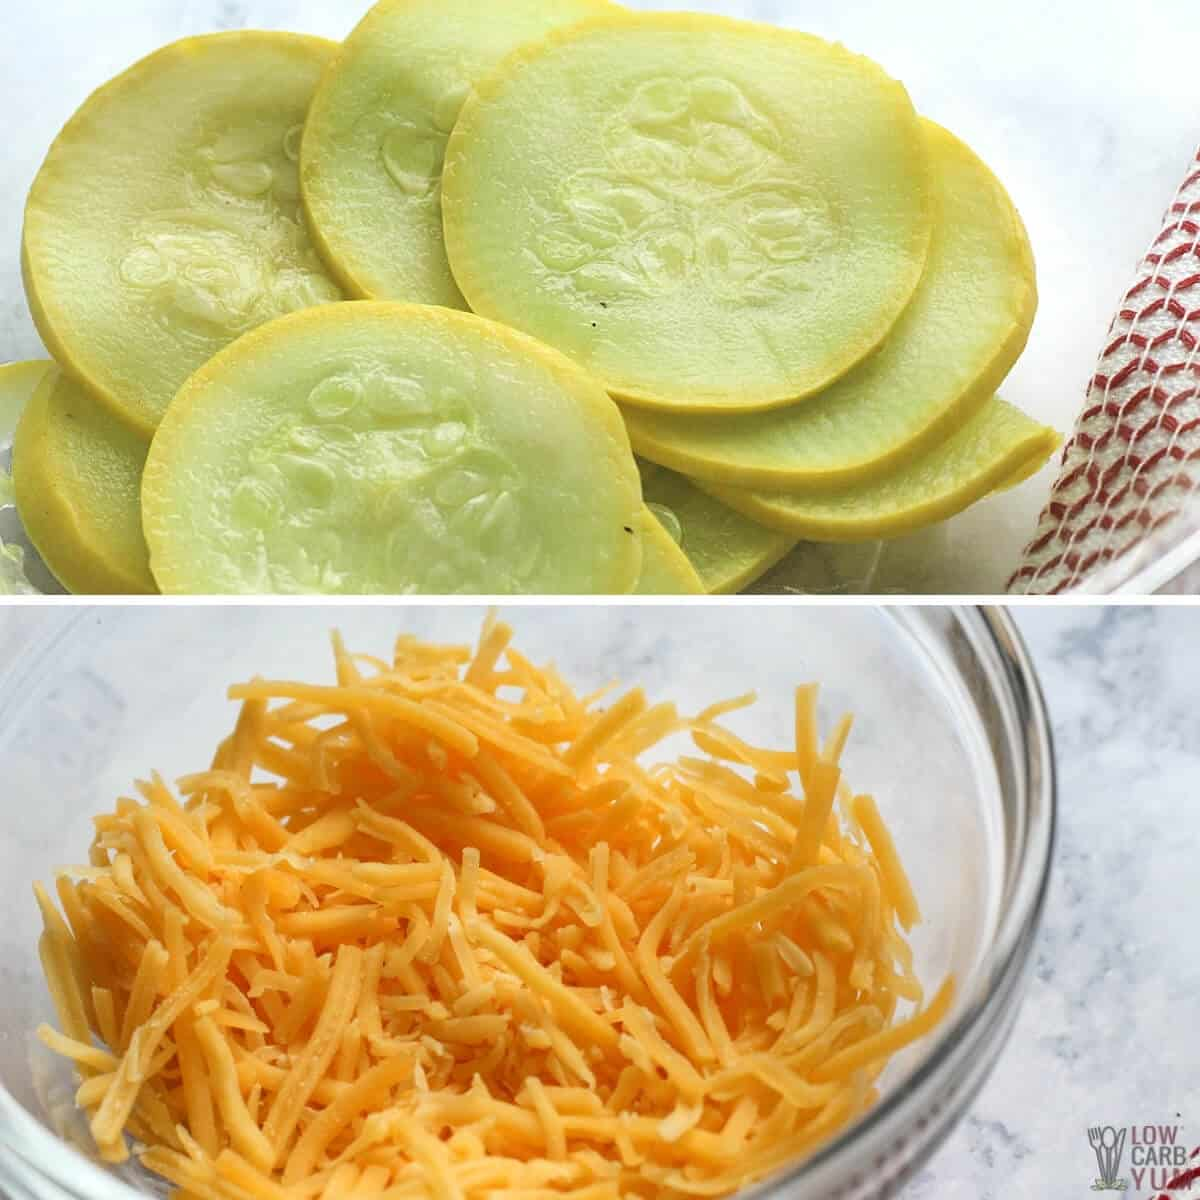 sliced yellow squash and grated cheese